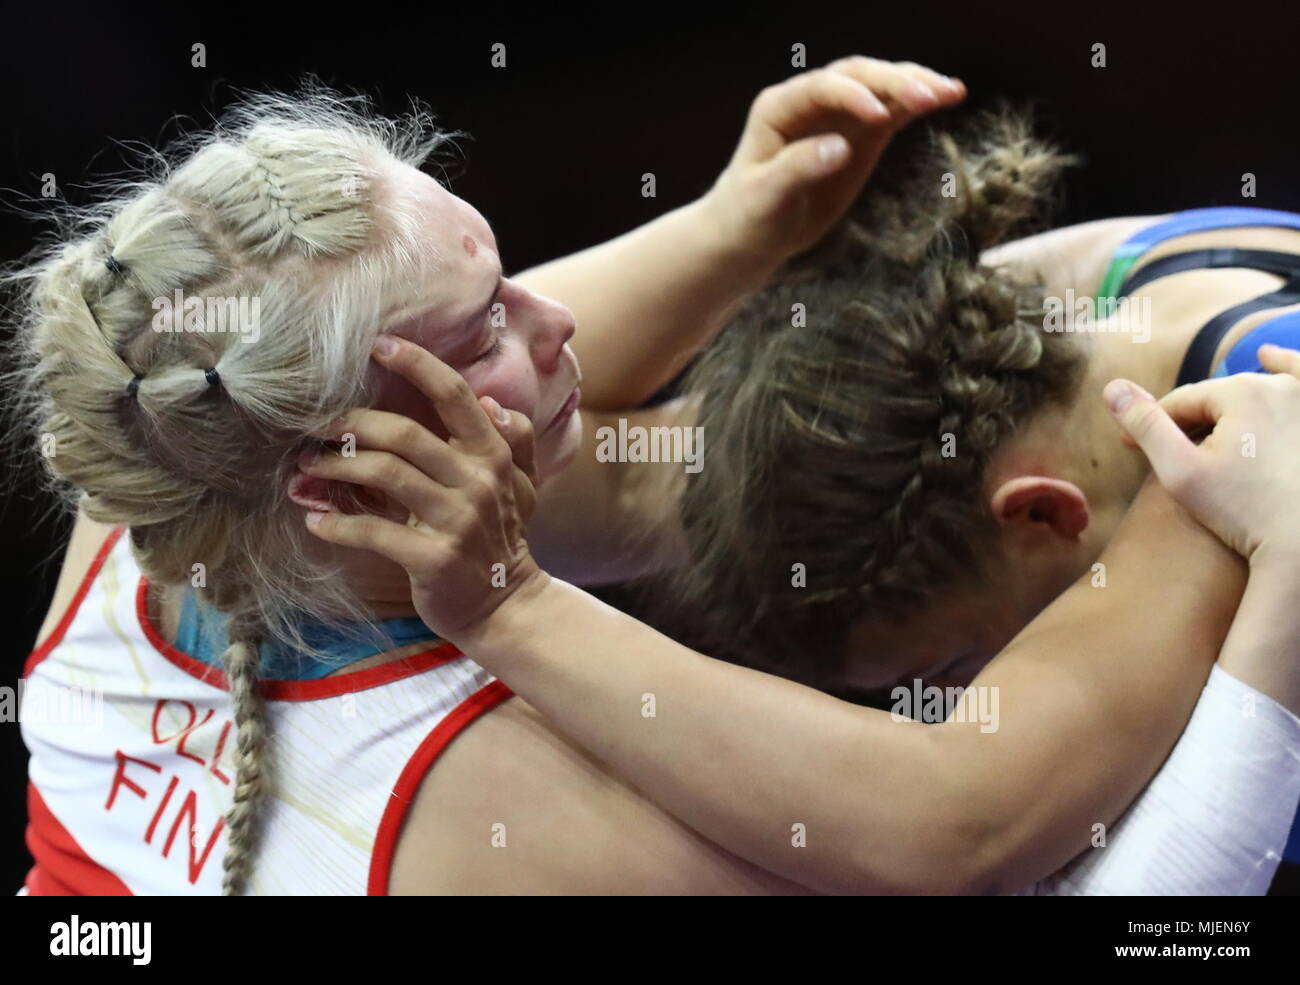 Kaspiysk, Russia. 04th May, 2018. DAGESTAN, RUSSIA - MAY 4, 2018: Finland's Petra Olli (L) and Azerbaijan's Elis Manolova compete in the women's -65 kg freestyle wrestling category at the 2018 European Wrestling Championships at Ali Aliyev Palace of Sports and Youth in the town of Kaspiysk. Stanislav Krasilnikov/TASS Credit: ITAR-TASS News Agency/Alamy Live News - Stock Image